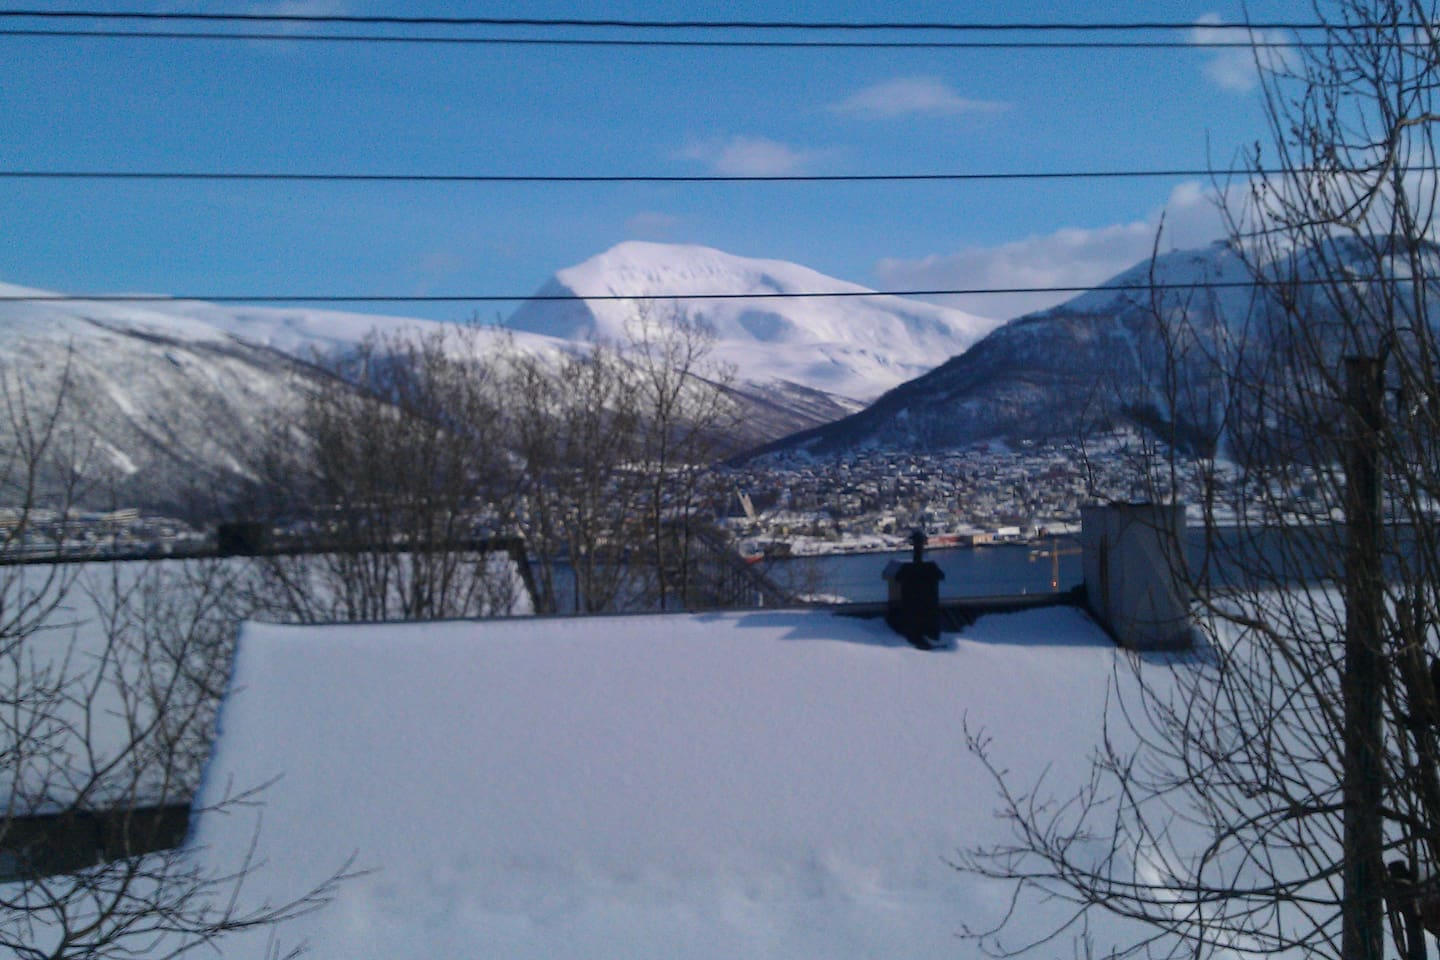 View toward Tromsdalen with Tromsdalstinden (the mountain) and Ishavskatedralen (the famous church in Tromsø)